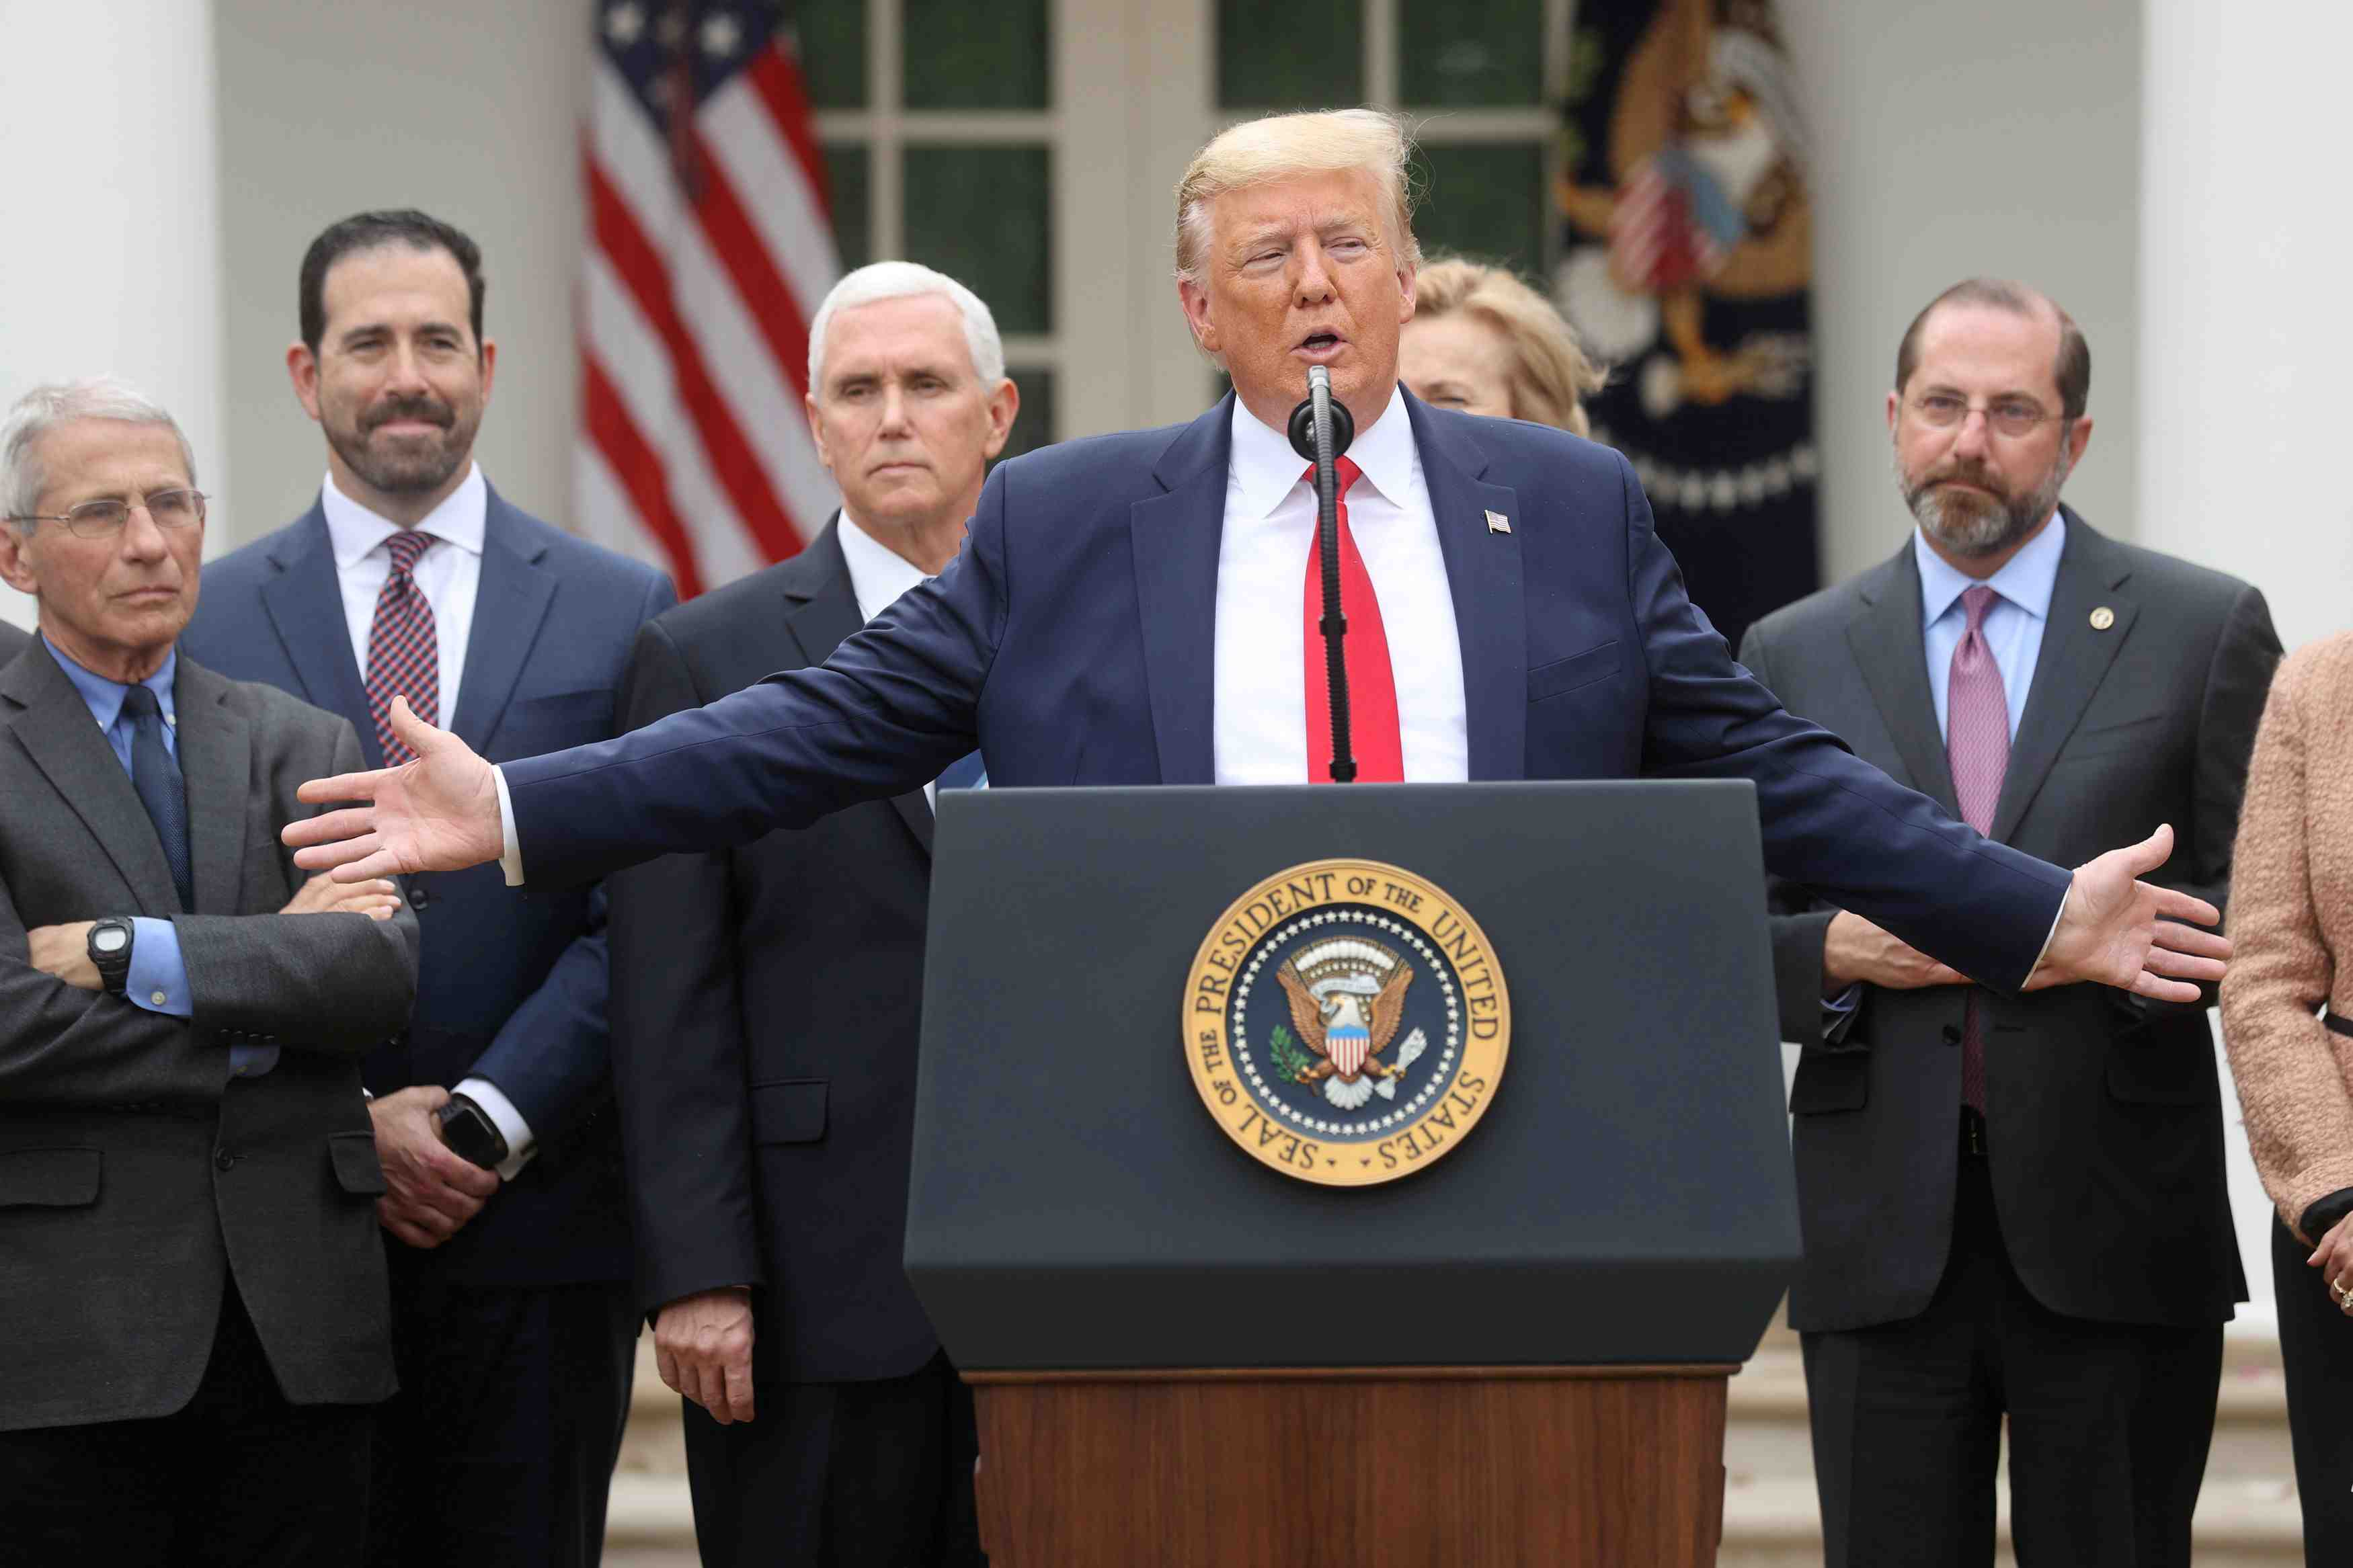 U.S. President Trump declares coronavirus pandemic a national emergency during news conference at the White House in Washington